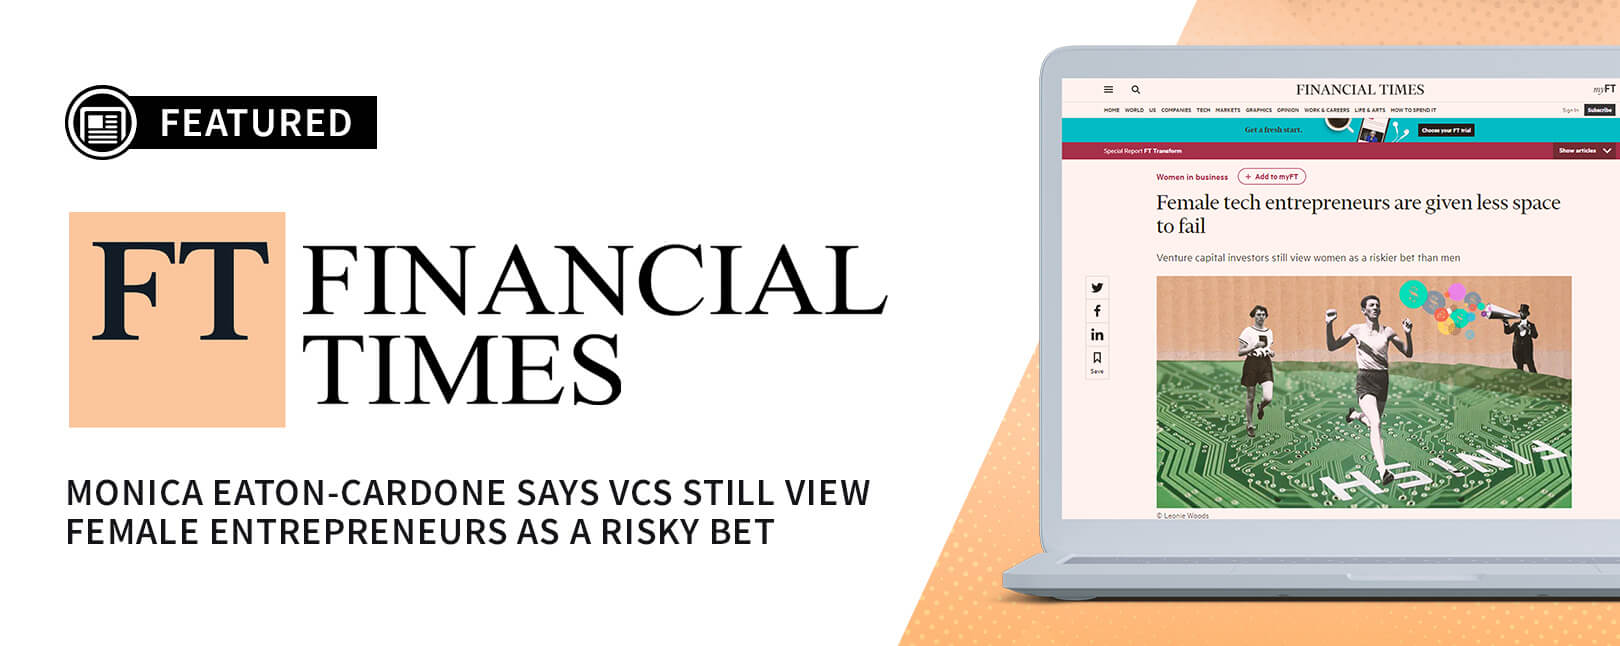 Financial Times Feature